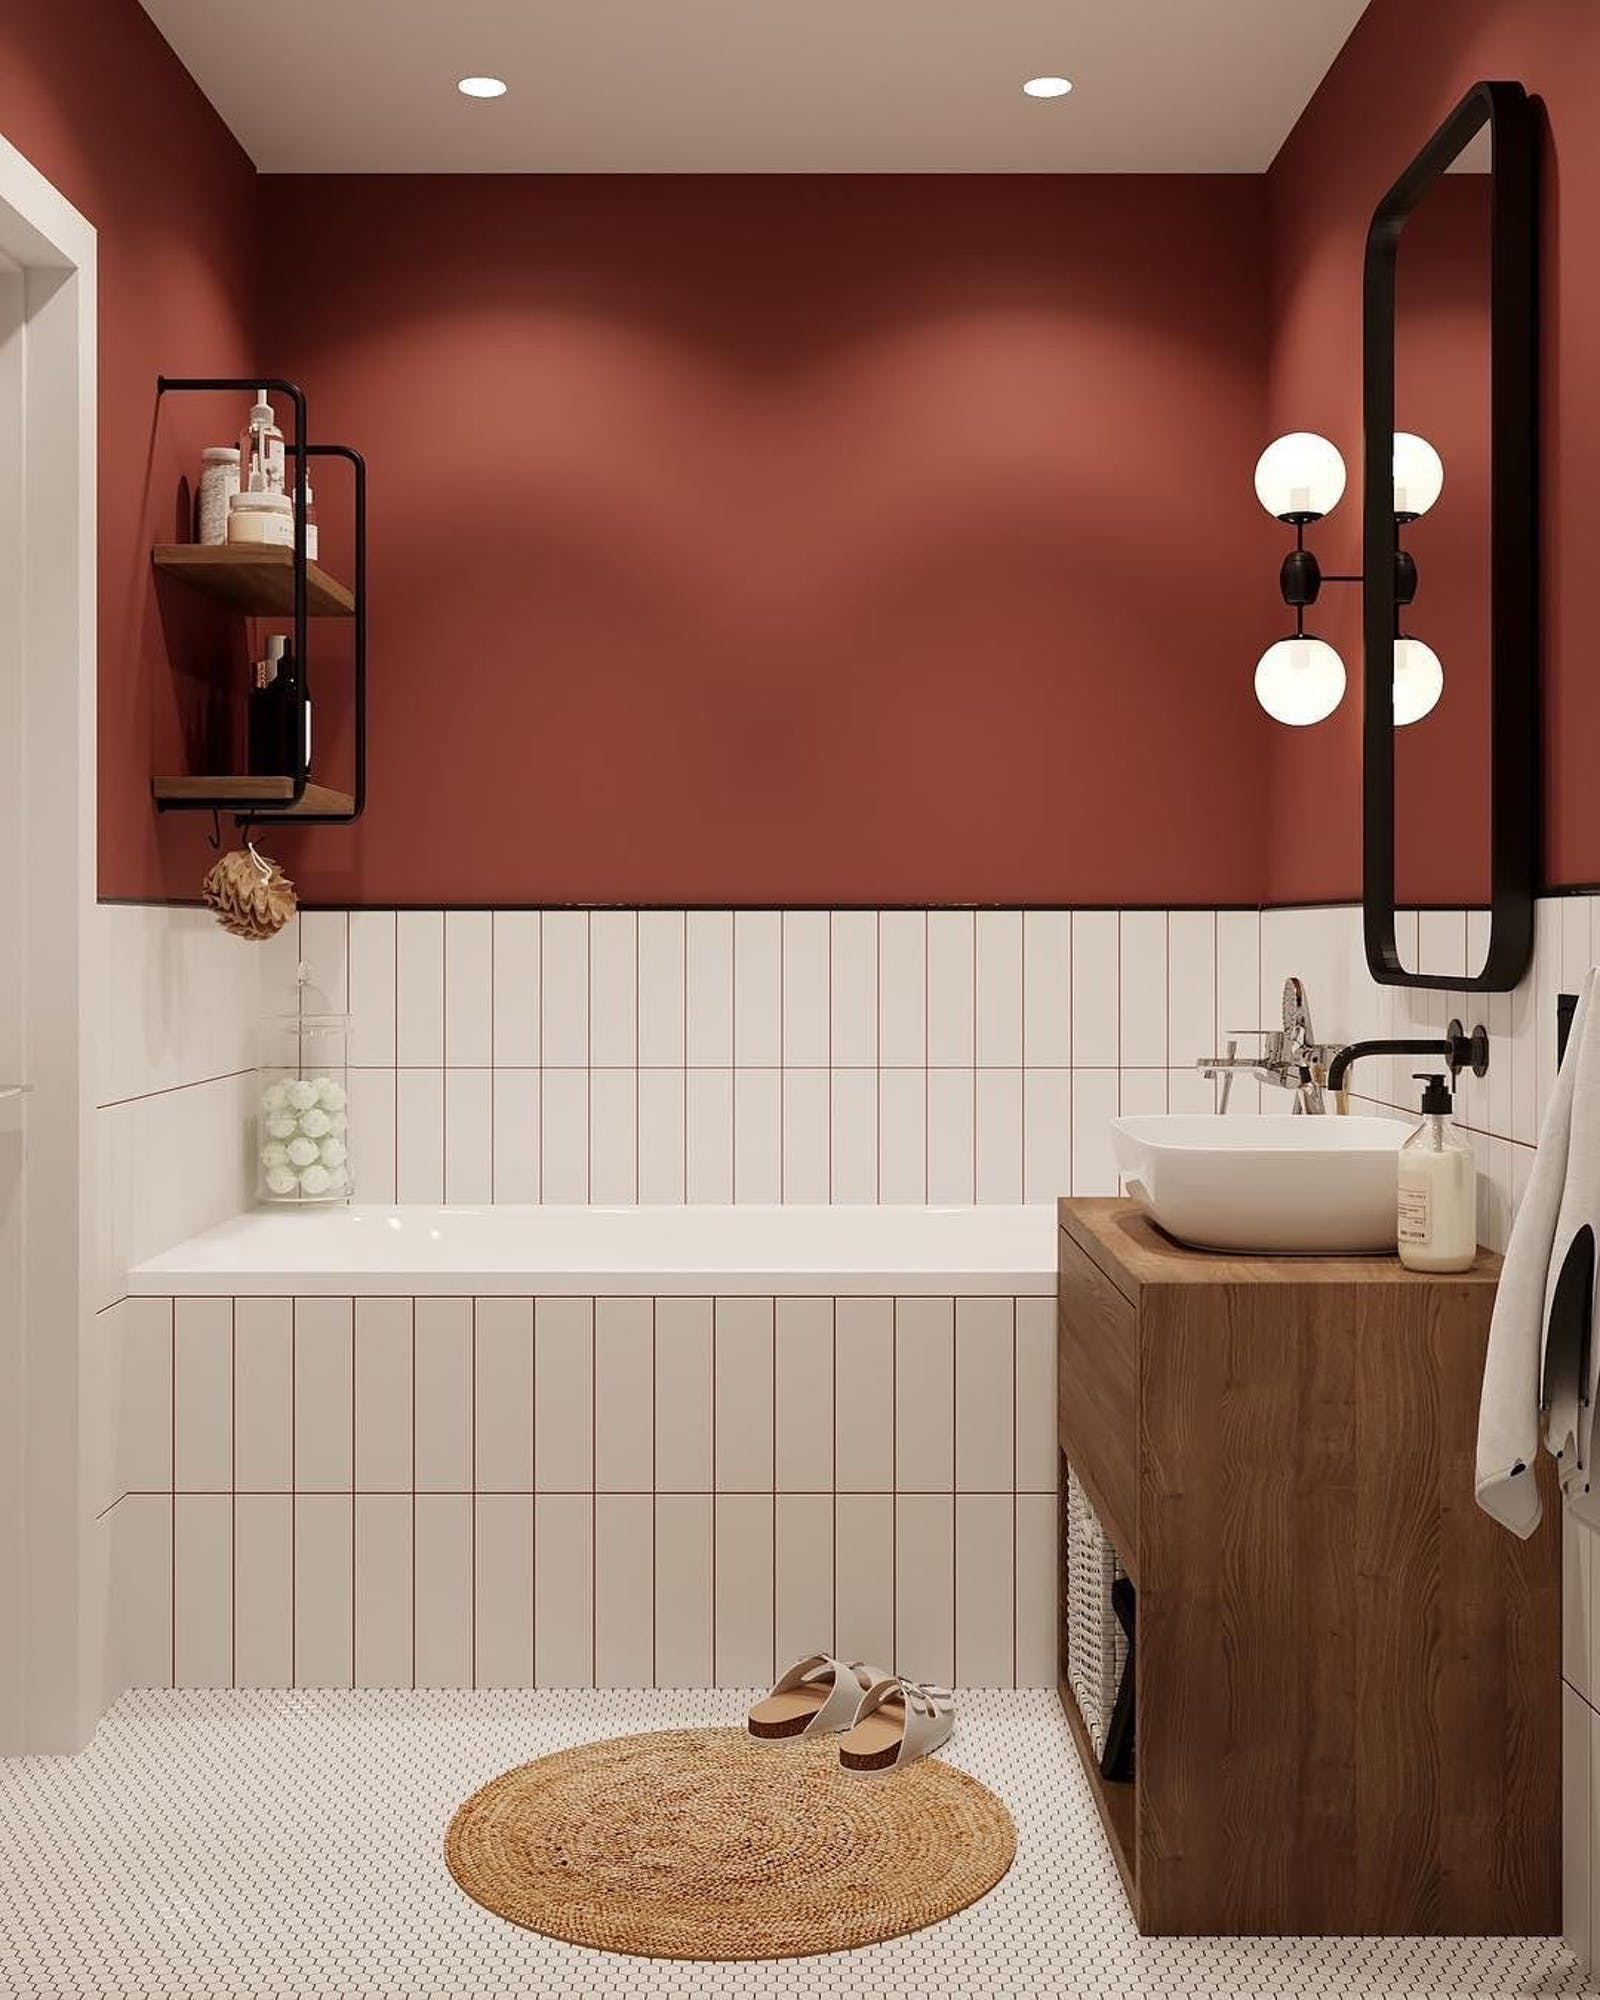 Terracotta red bathroom with white tiles